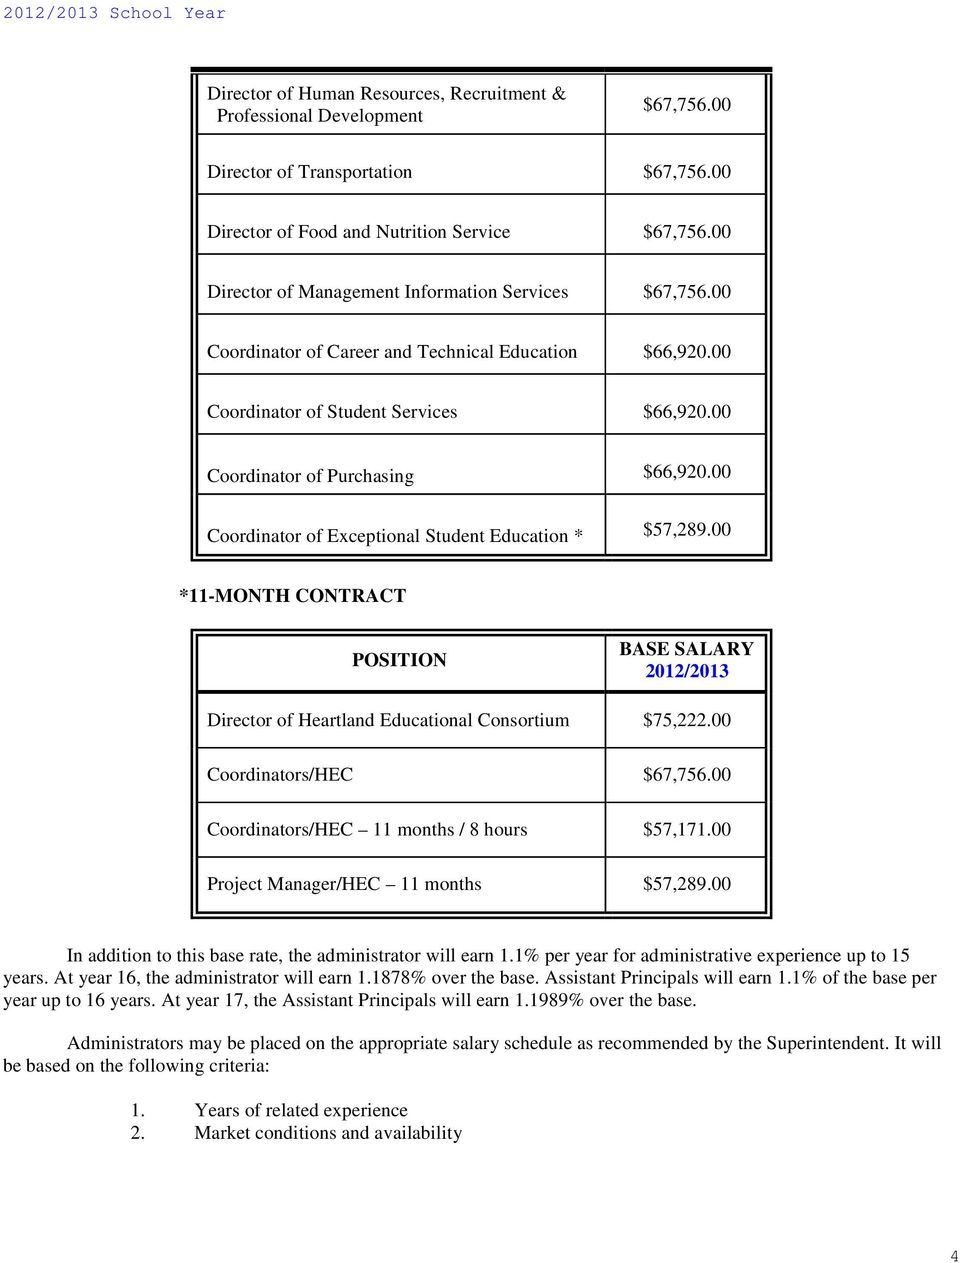 00 Coordinator of Exceptional Student Education * $57,289.00 *11-MONTH CONTRACT POSITION BASE SALARY 2012/2013 Director of Heartland Educational Consortium $75,222.00 Coordinators/HEC $67,756.